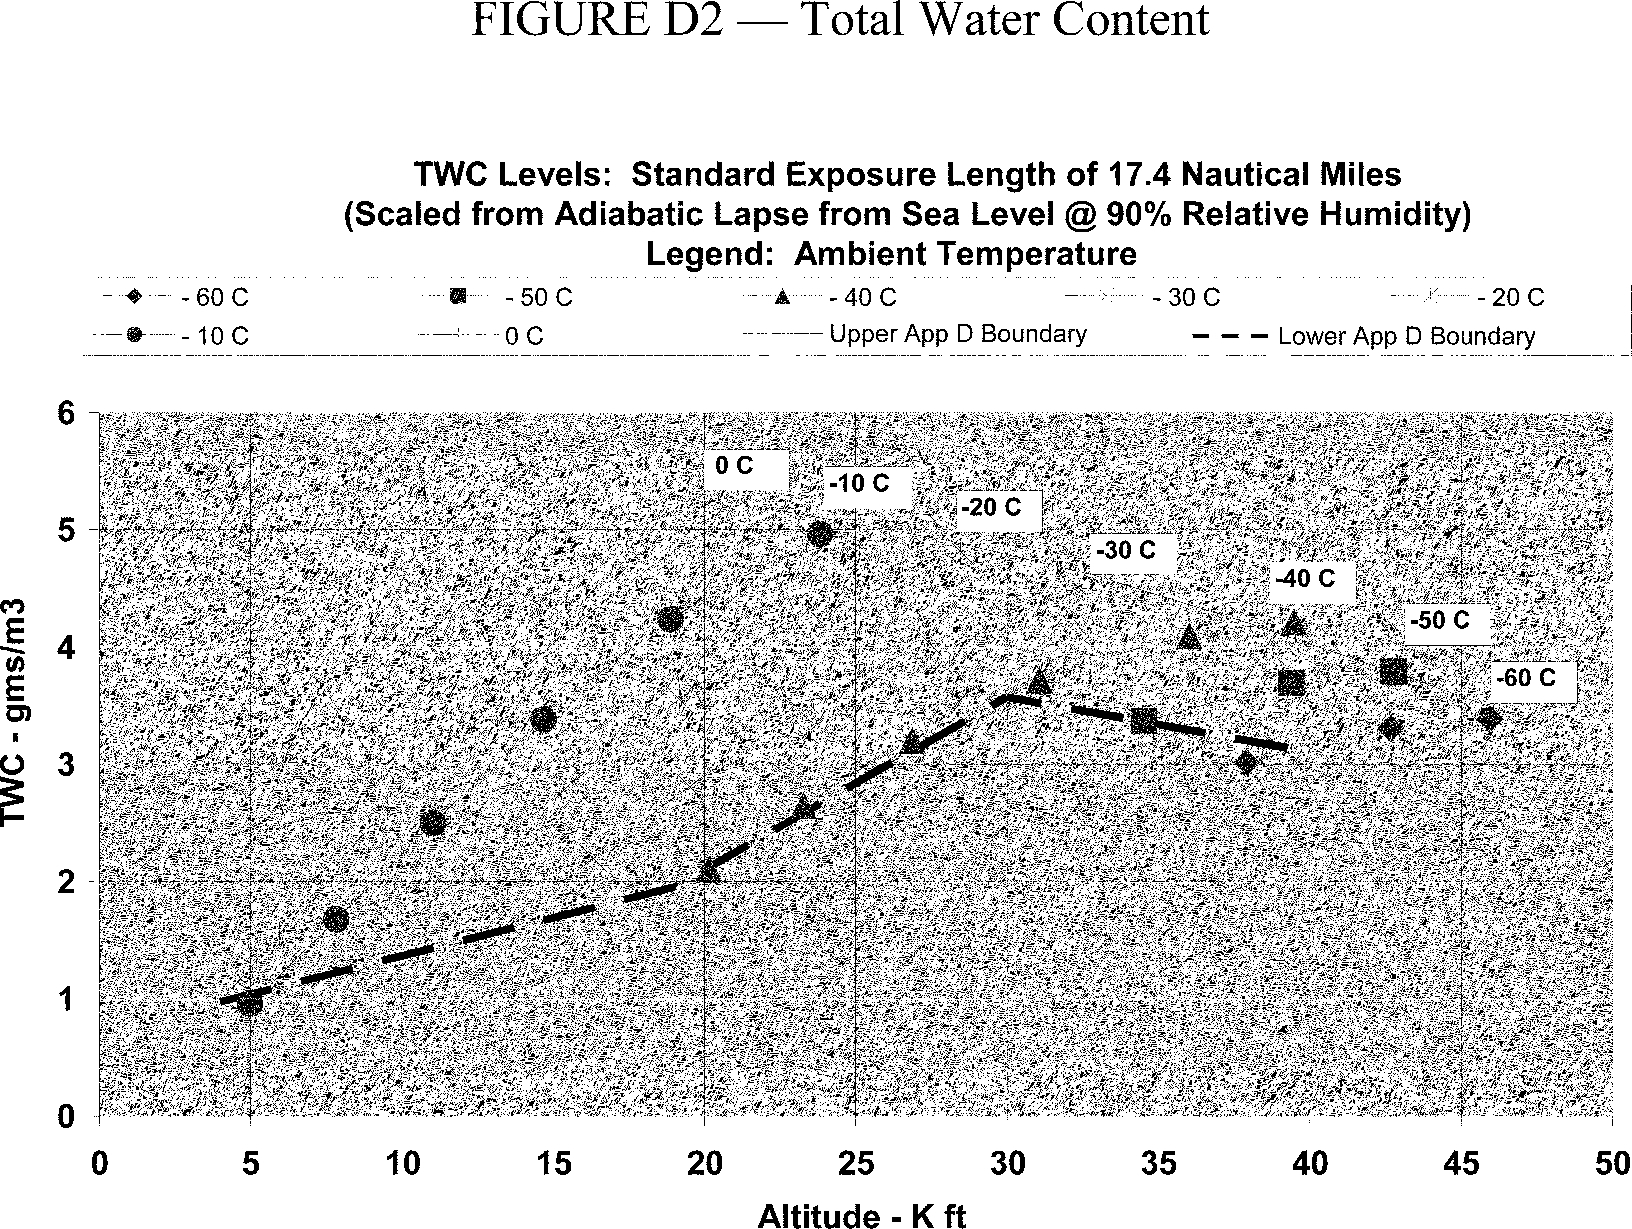 Graphic of Within the envelope, total water content (TWC) in g/m3 has been determined based upon the adiabatic lapse defined by the convective rise of 90% relative humidity air from sea level to higher altitudes and scaled by a factor of 0.65 to a standard cloud length of 17.4 nautical miles. Figure D2 of this Appendix displays TWC for this distance over a range of ambient temperature within the boundaries of the ice crystal envelope specified in Figure D1 of this Appendix.